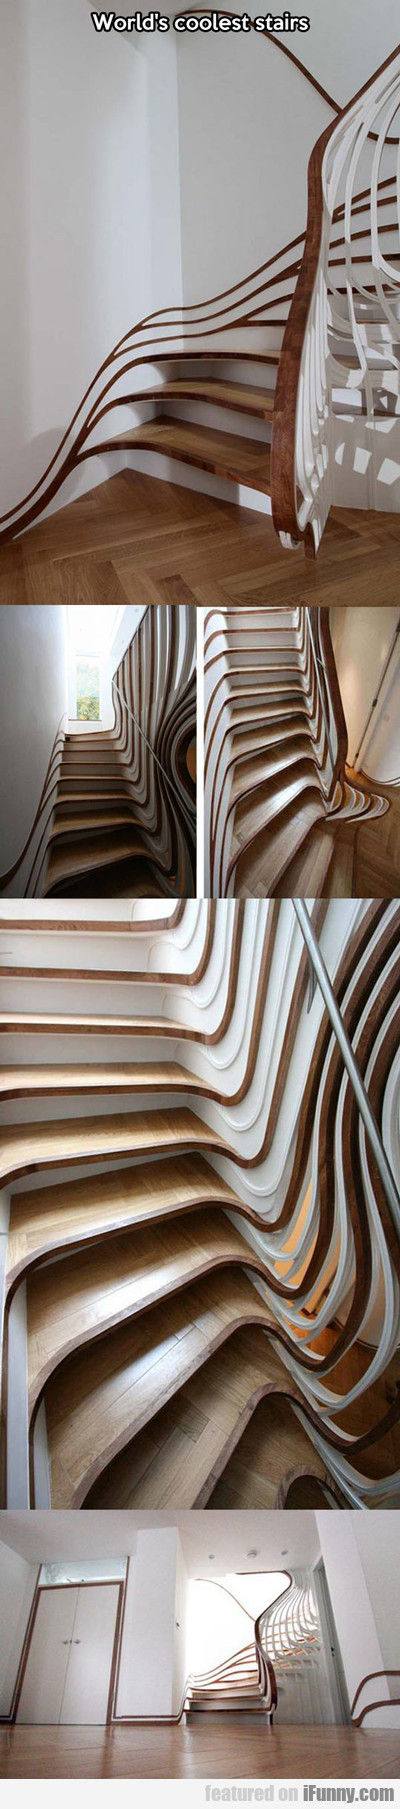 World's Coolest Stairs...